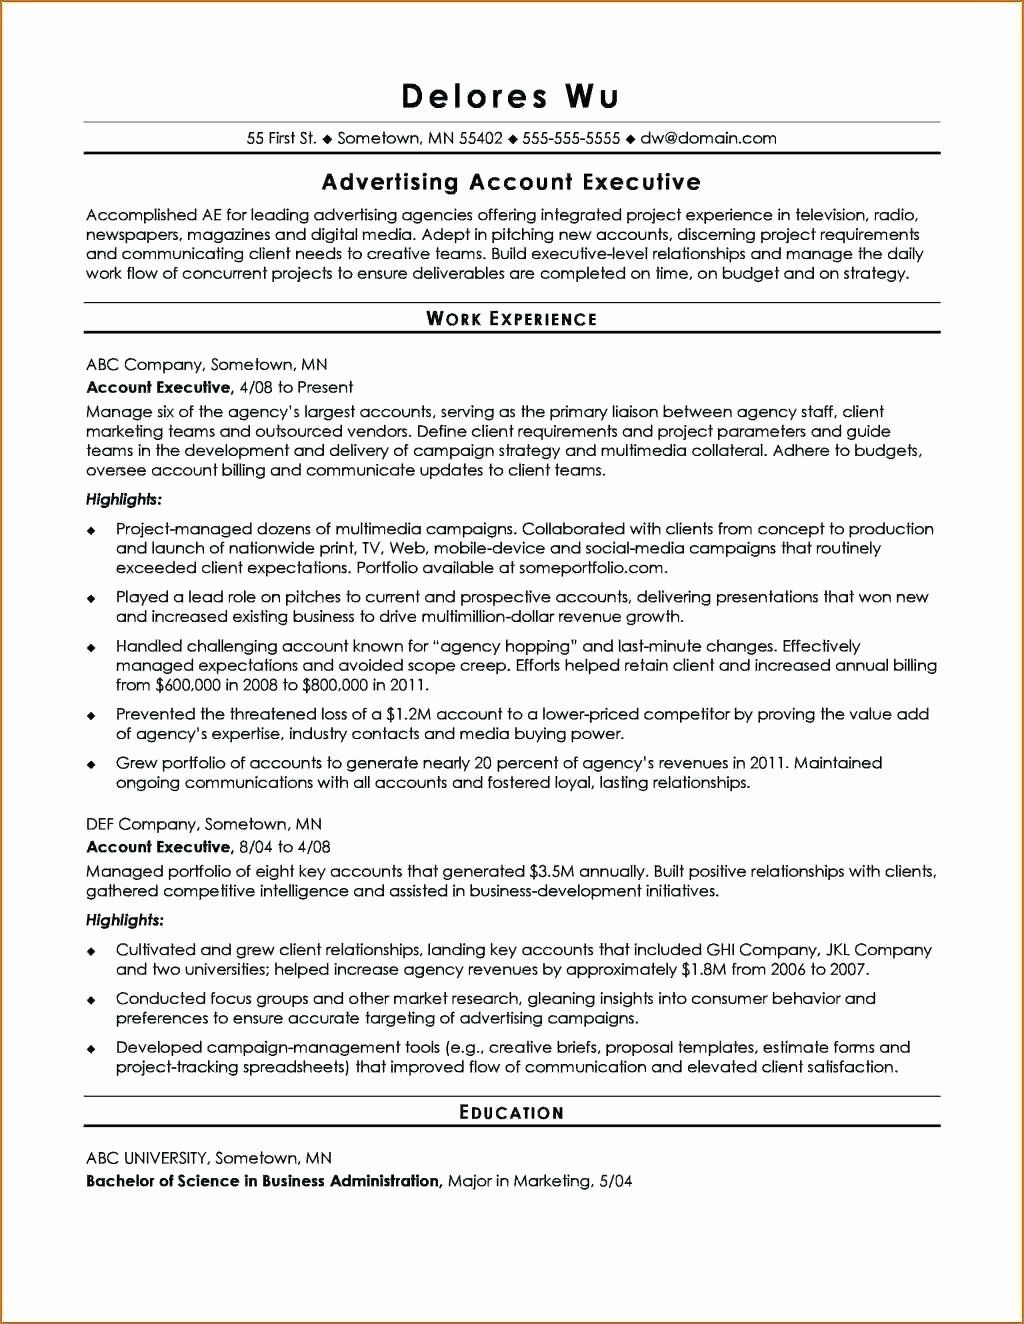 Advertising Contract Template Free in 2020 (With images